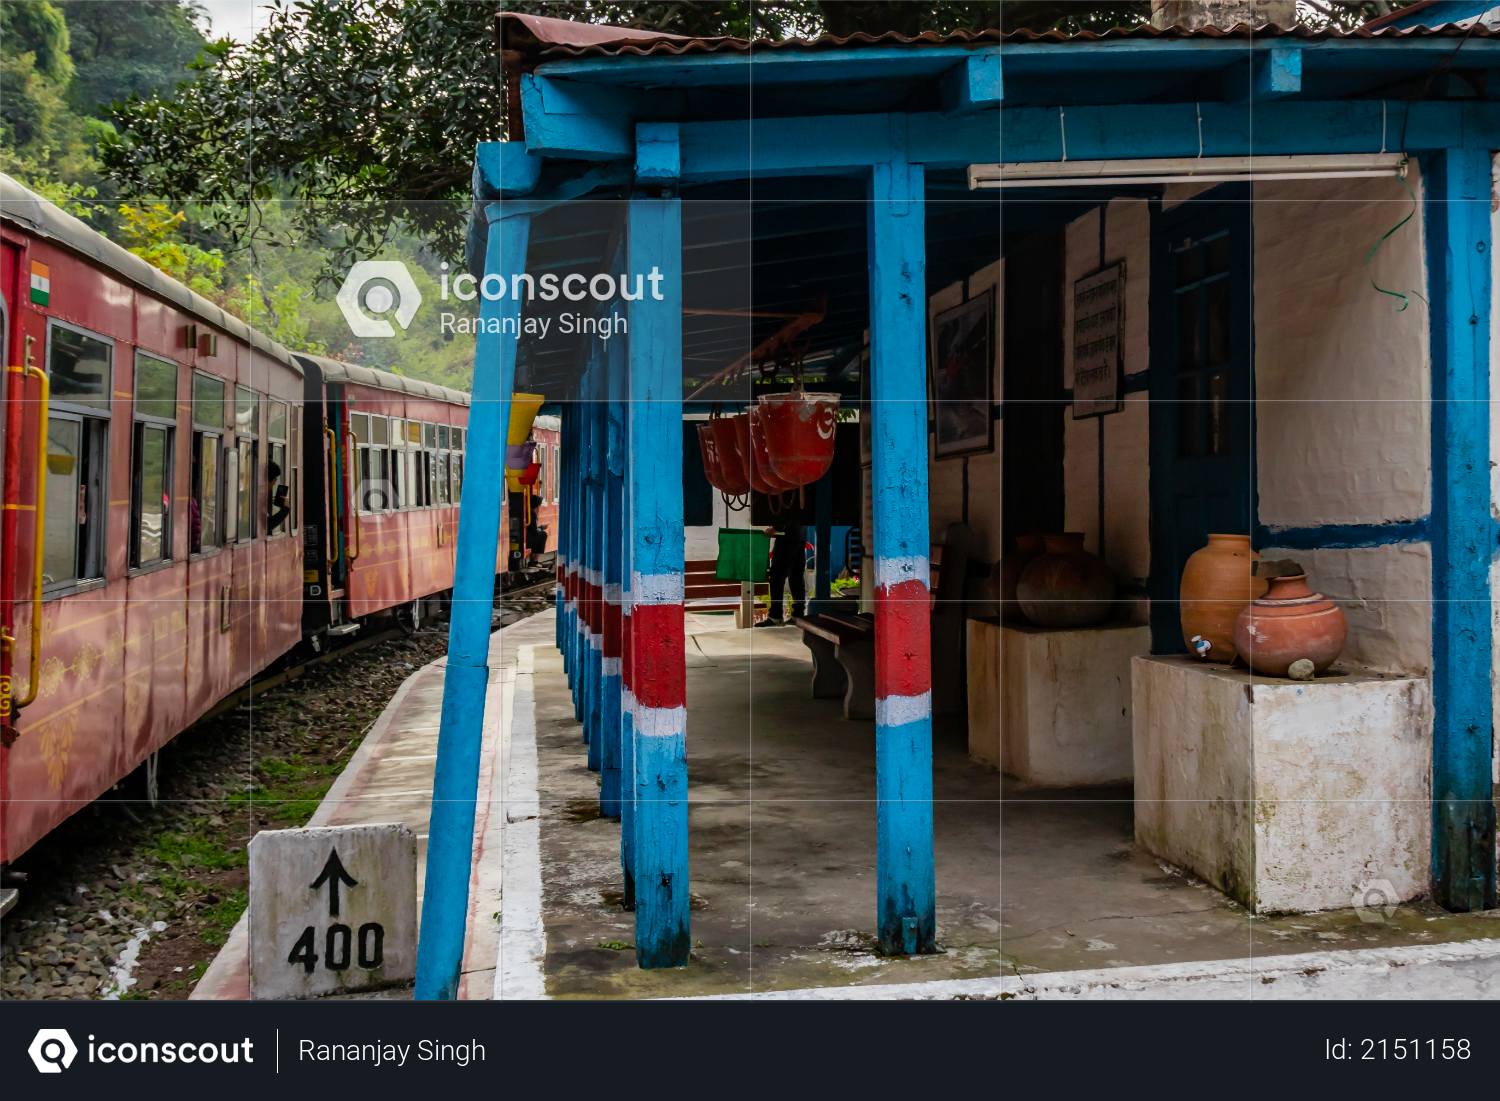 Railway station with a train passing by, travel concept Photo